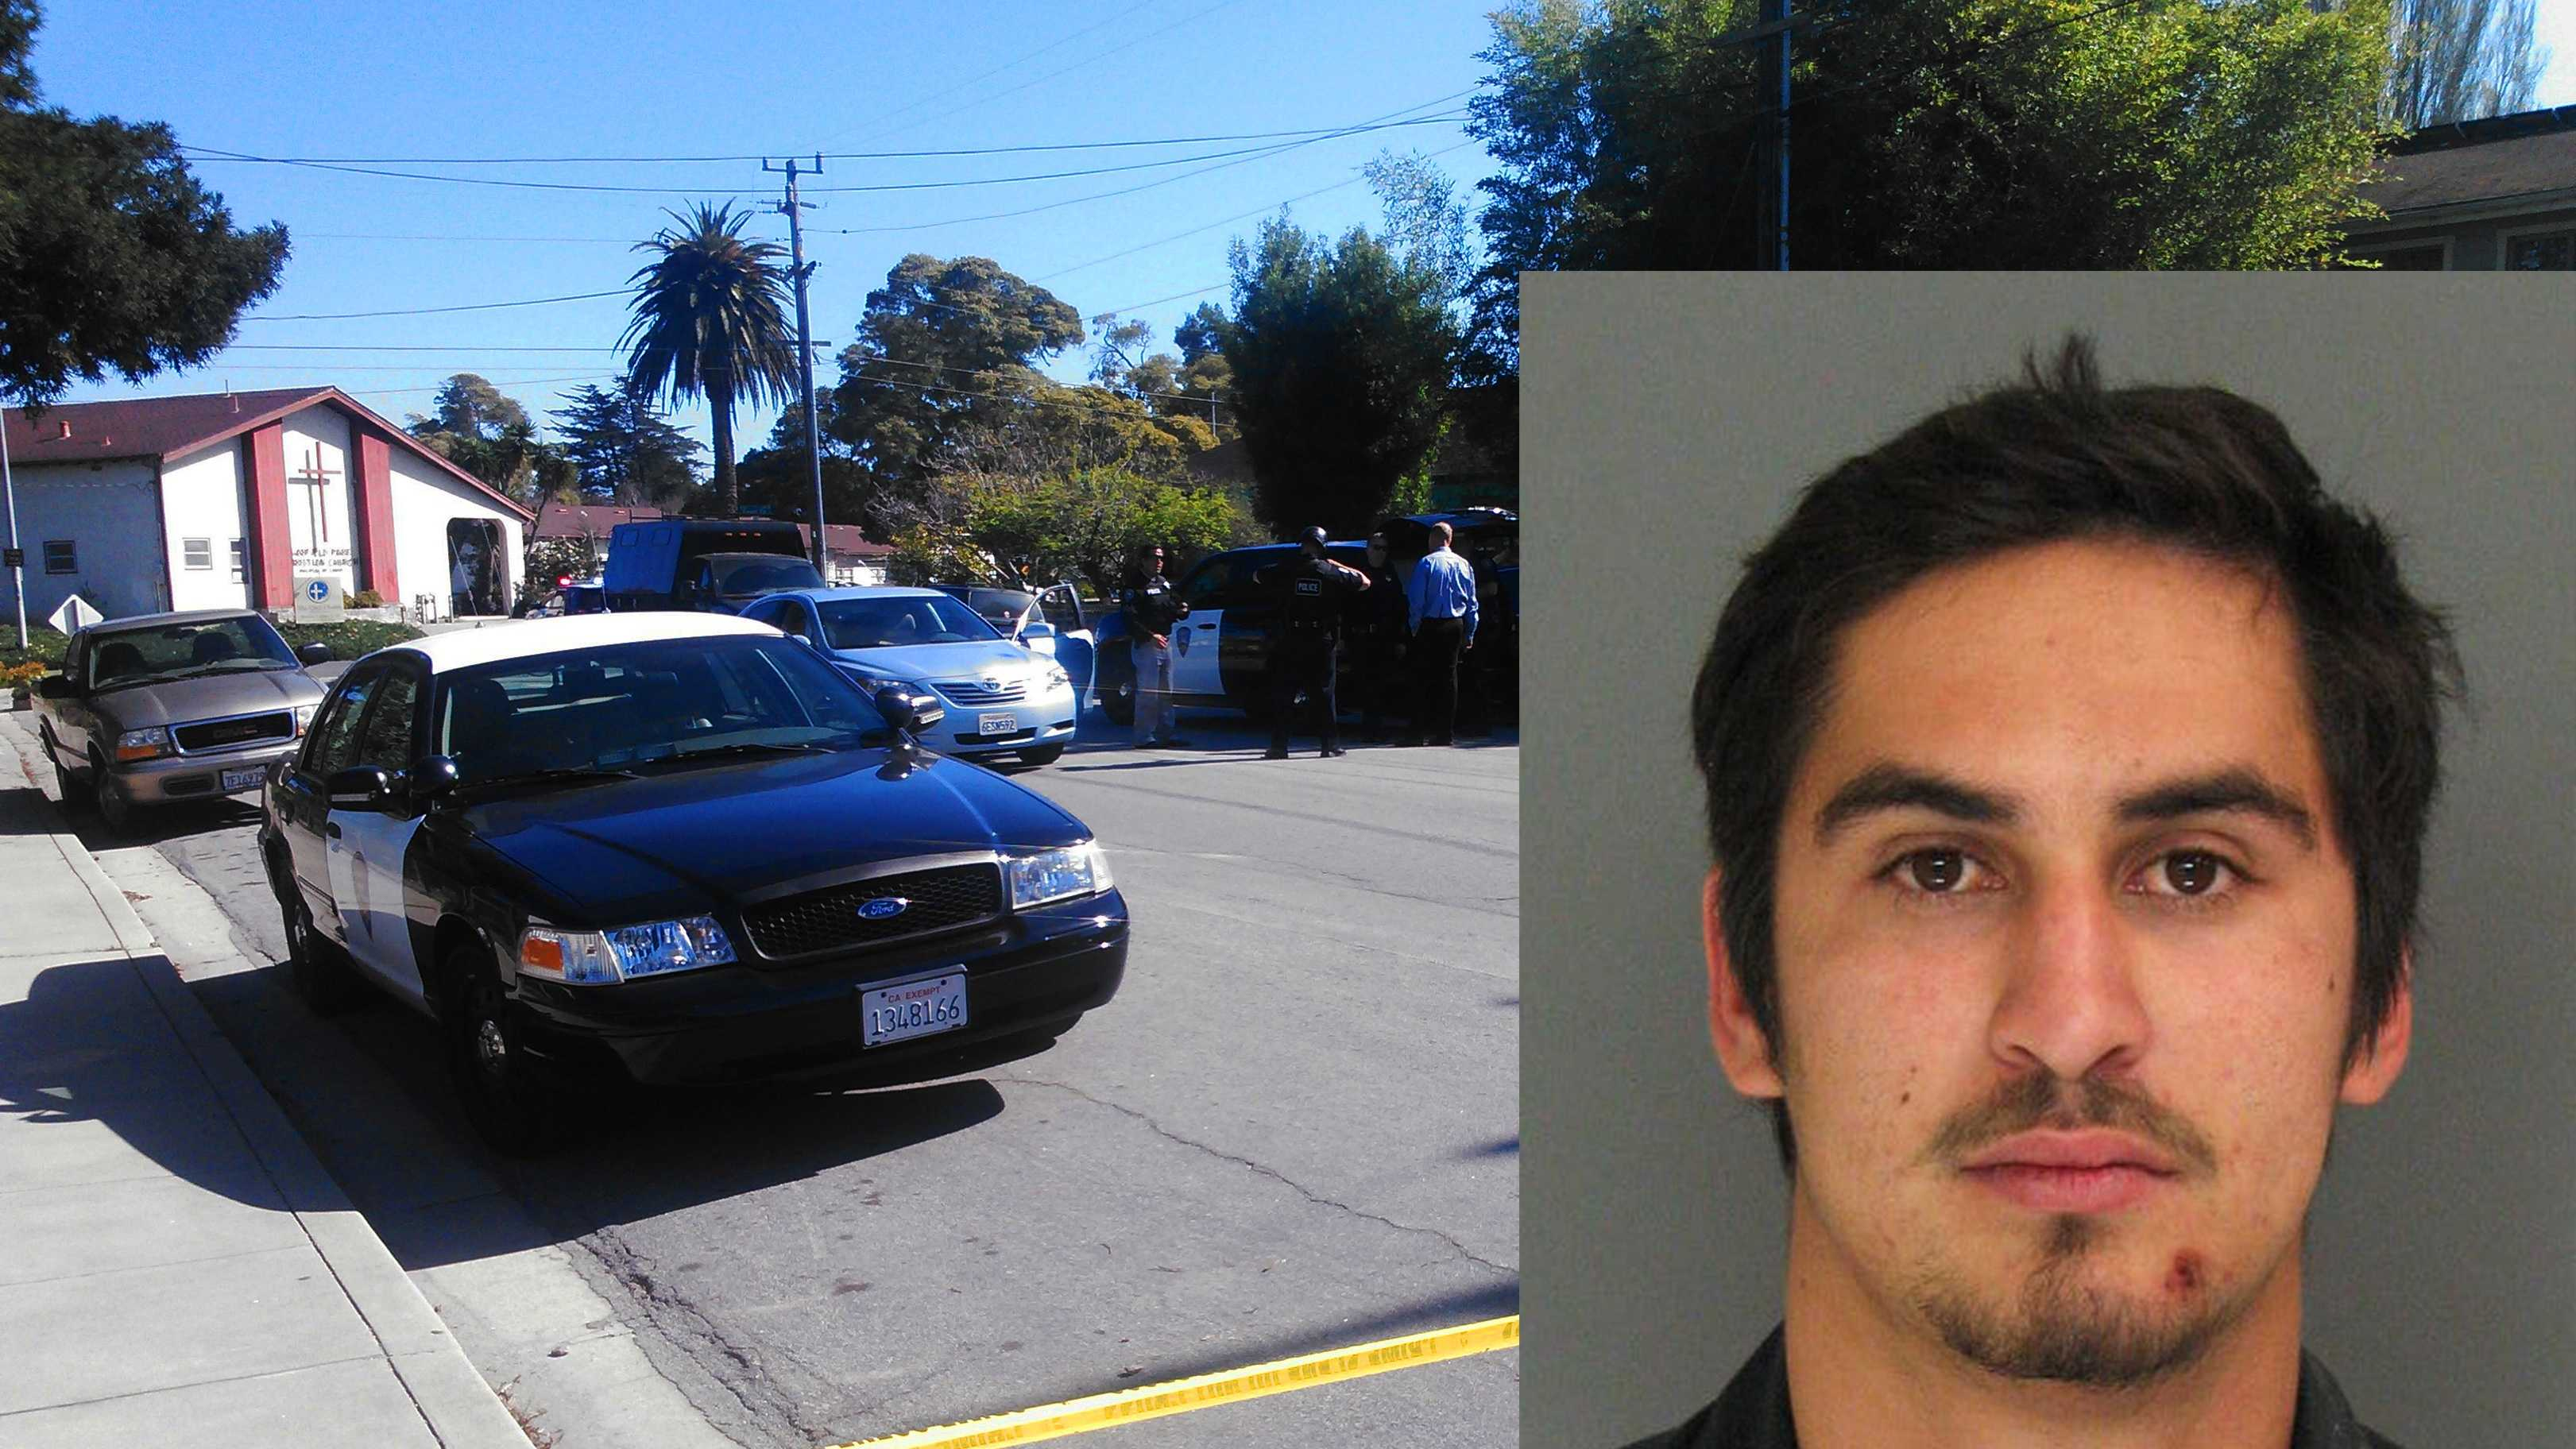 Kyle Lee Allala called 911 and said someone shot his girlfriend on Errett Circle in Santa Cruz.